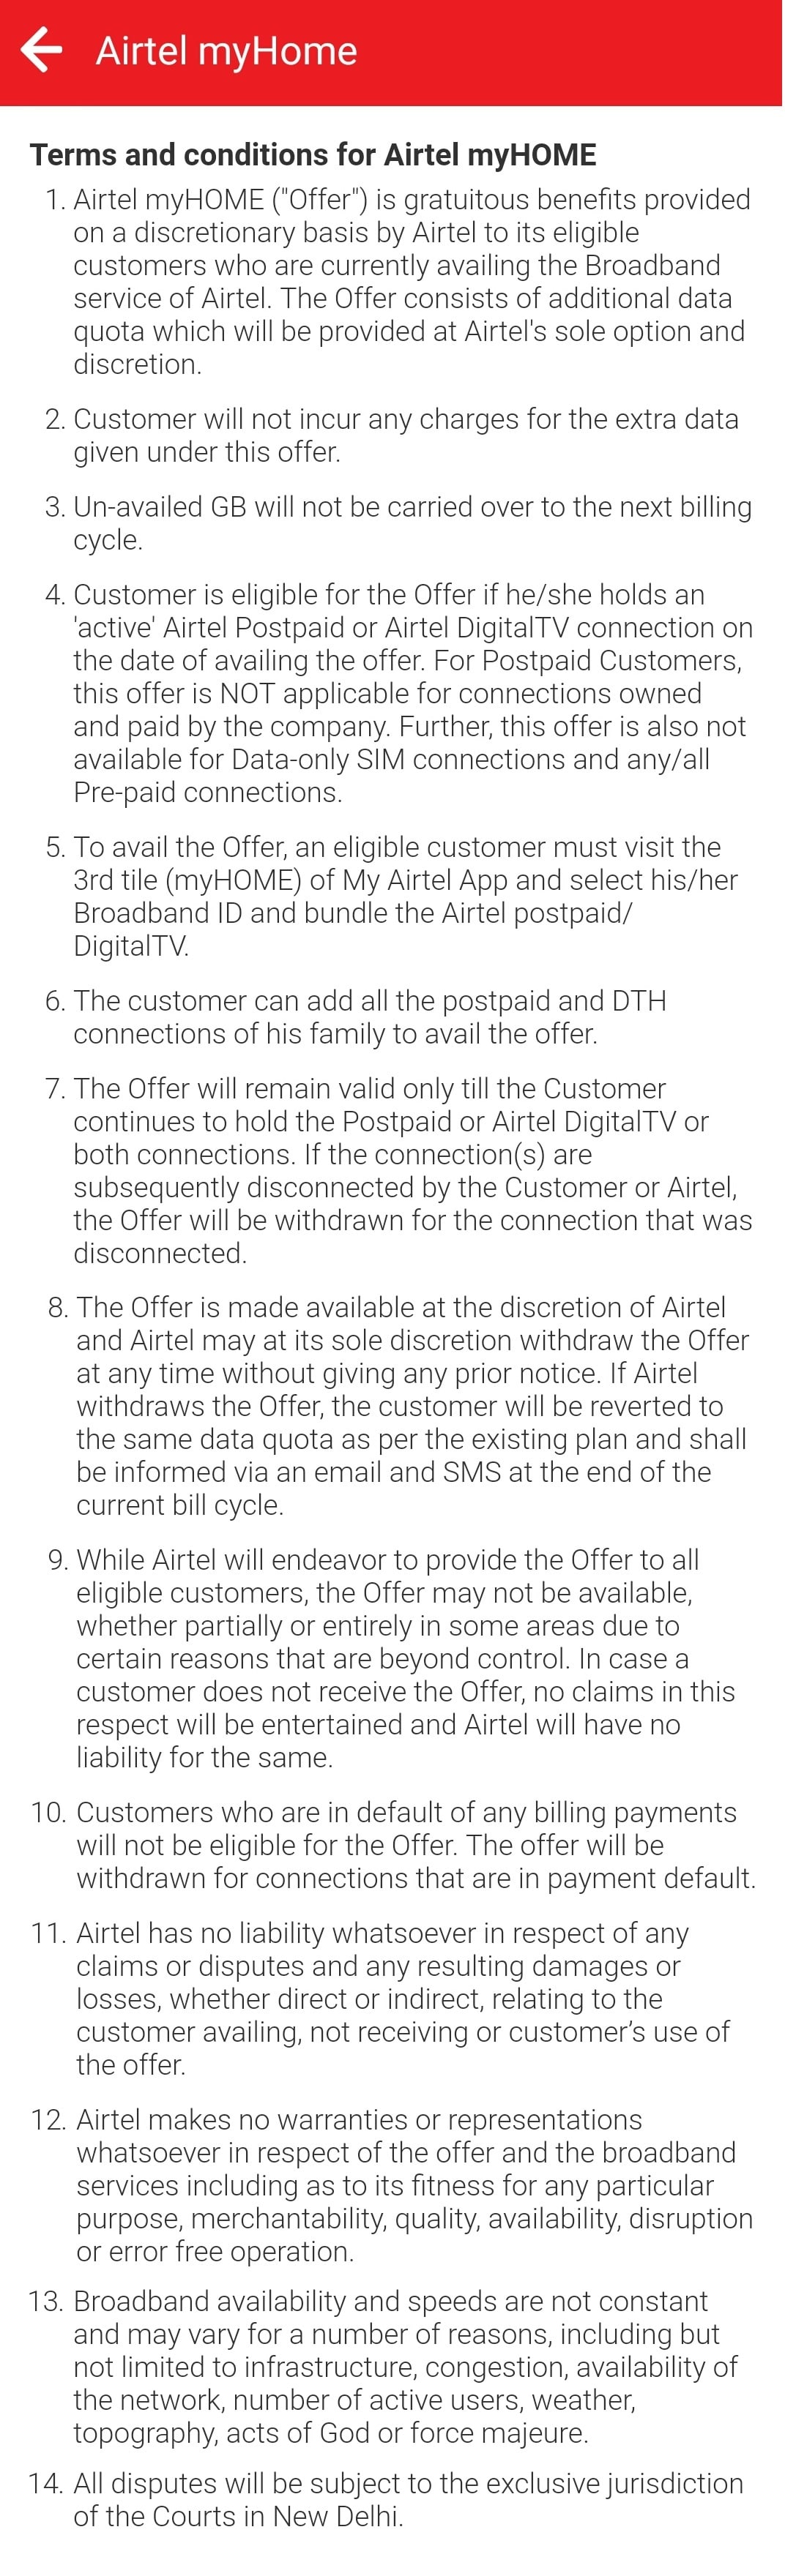 Airtel offers unlimited broadband data for bundling postpaid